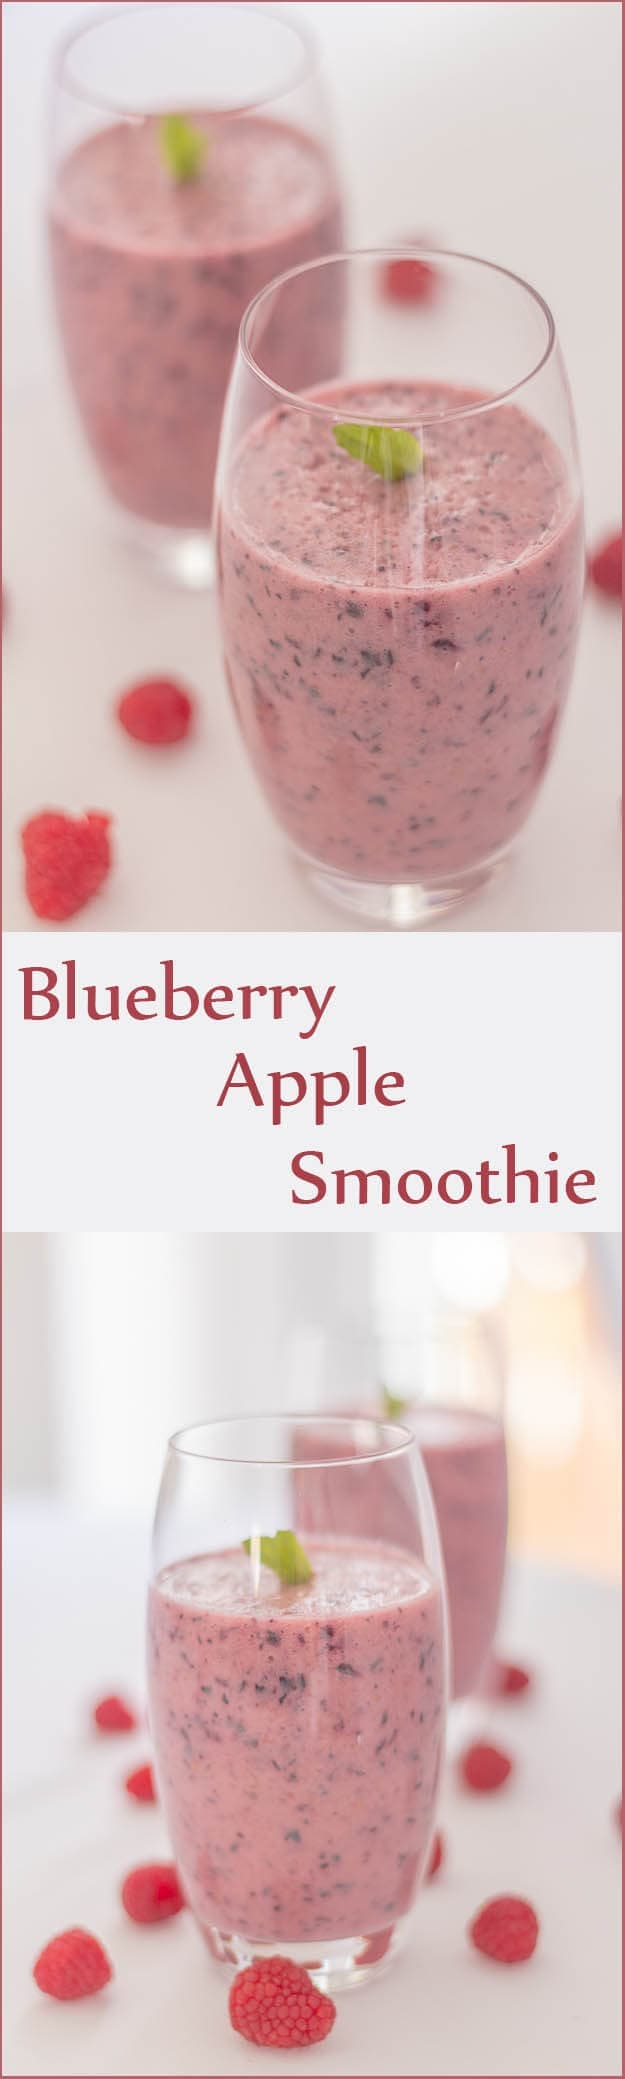 This blueberry apple smoothie is not only healthy but it tastes just great. An amazingly refreshing wakeup call in the morning or maybe as a lively pick me up during the day.